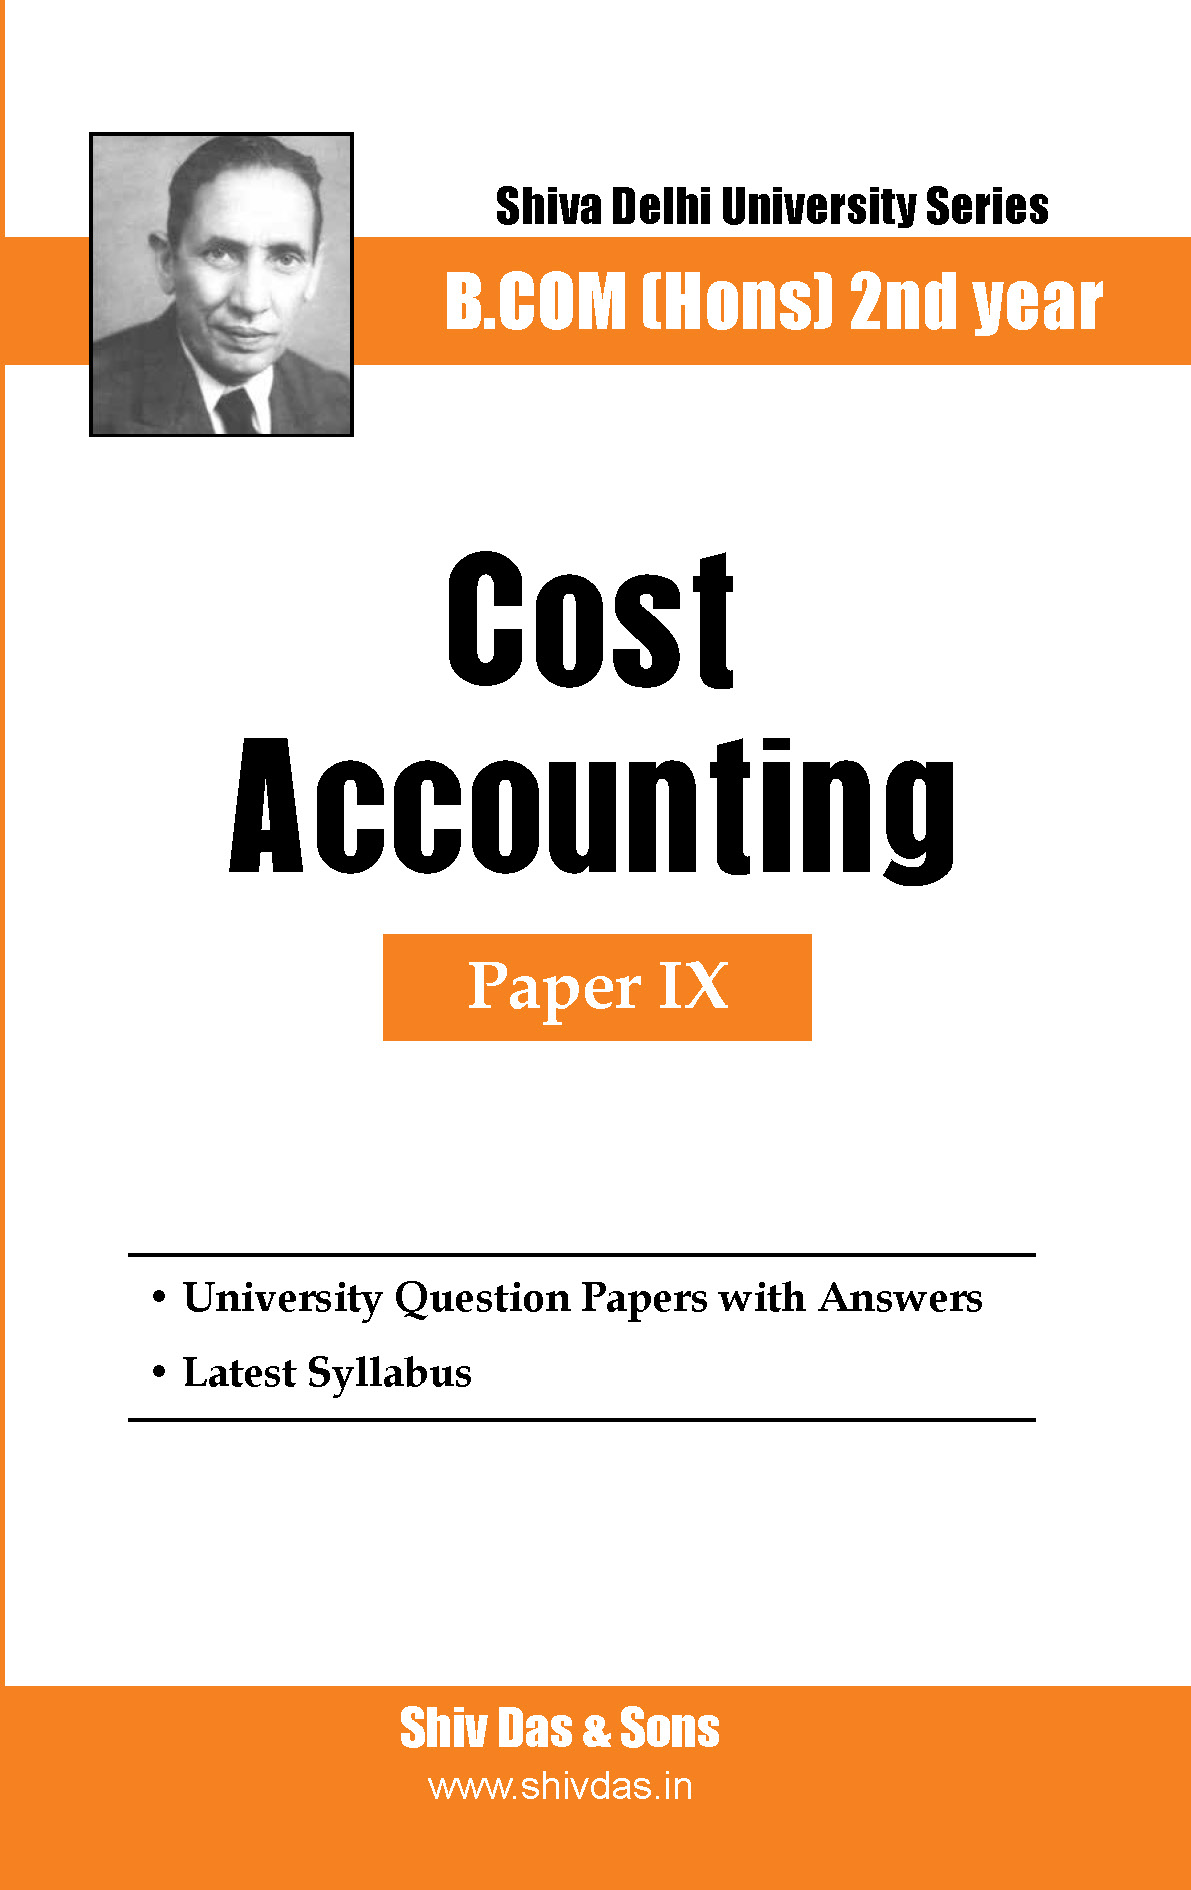 Cost Accounting for B.Com Hons SOL/External 2nd Year